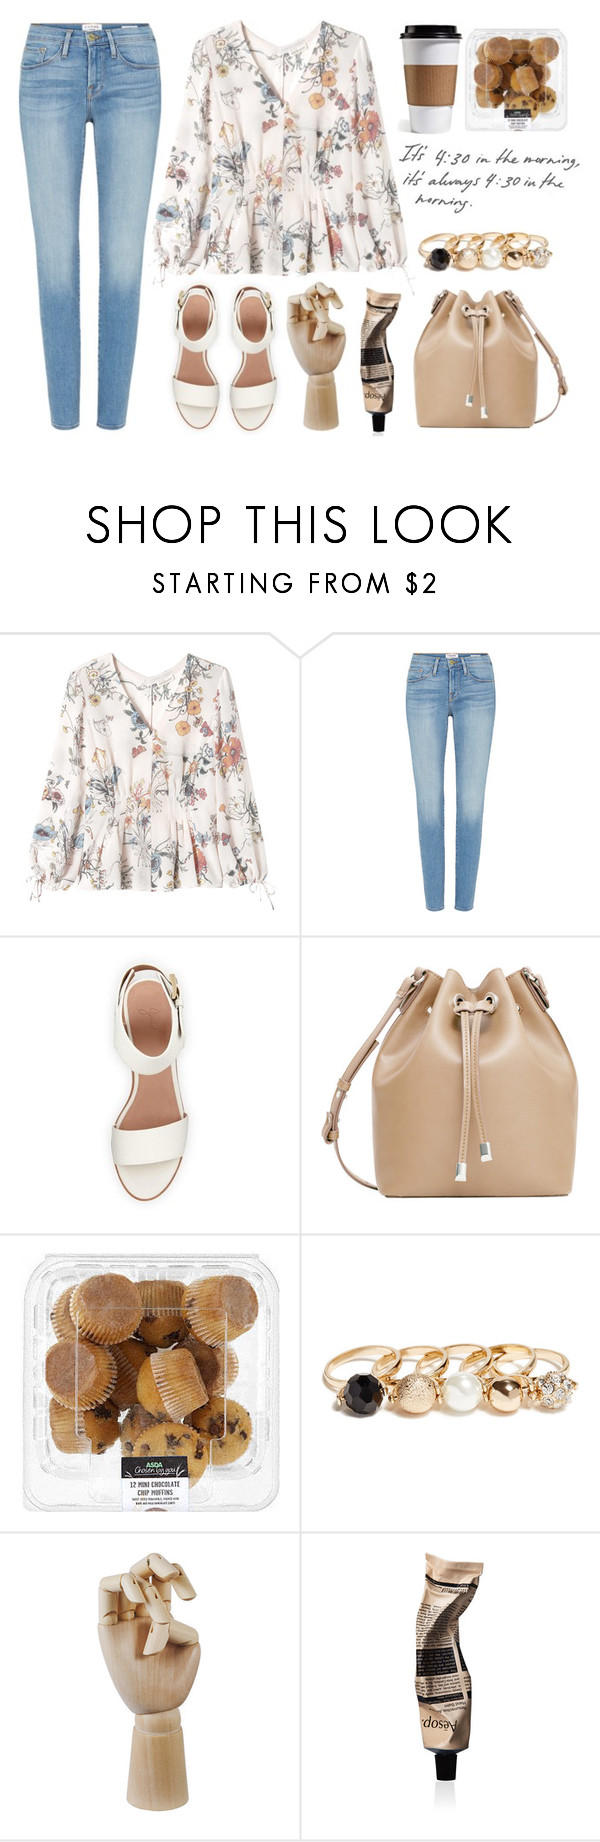 """Untitled #263"" by srikkanat-srkn ❤ liked on Polyvore featuring Rebecca Taylor, Frame Denim, BEA, MANGO, GUESS, HAY and Aesop"